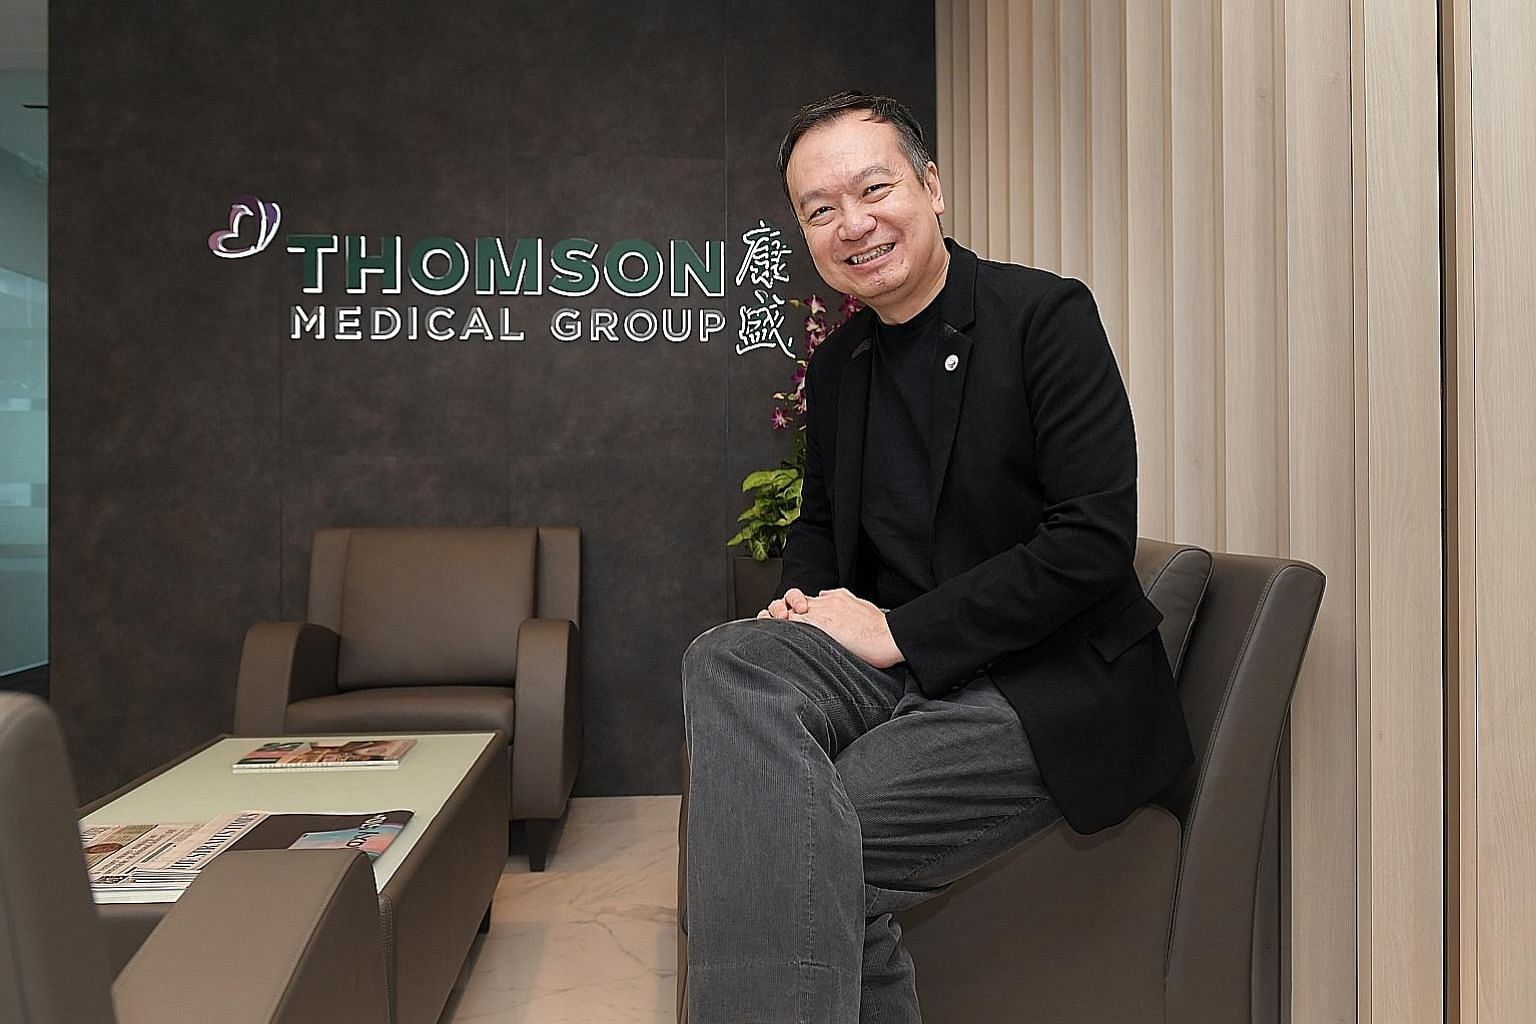 Thomson Medical Group CEO Roy Quek says the group is tapping international expertise to ensure it delivers the best healthcare. It is also constantly on the lookout for growth opportunities in Singapore and Malaysia.